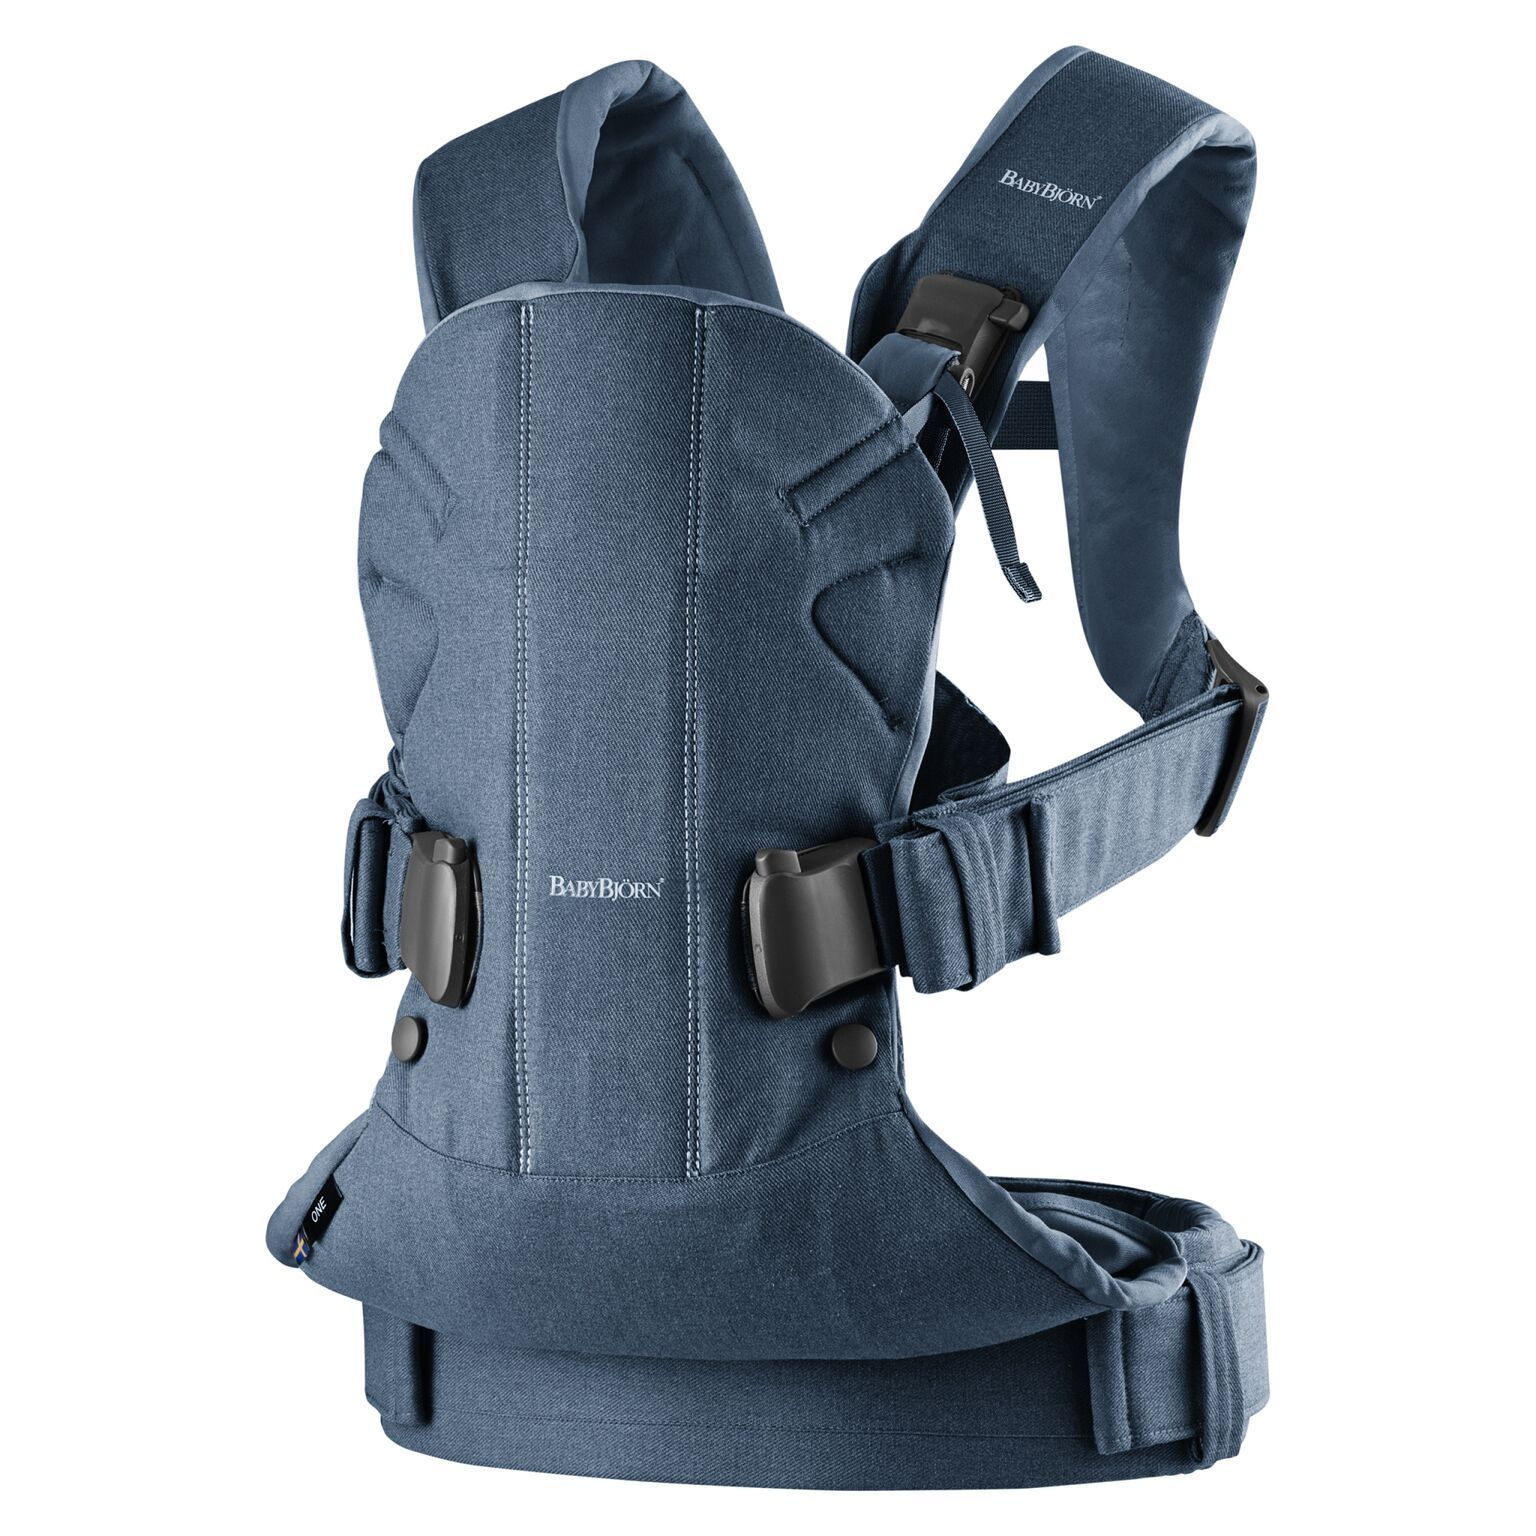 BabyBjorn Baby Carrier One Version 2018 Denim Midnight Blue Cotton Mix